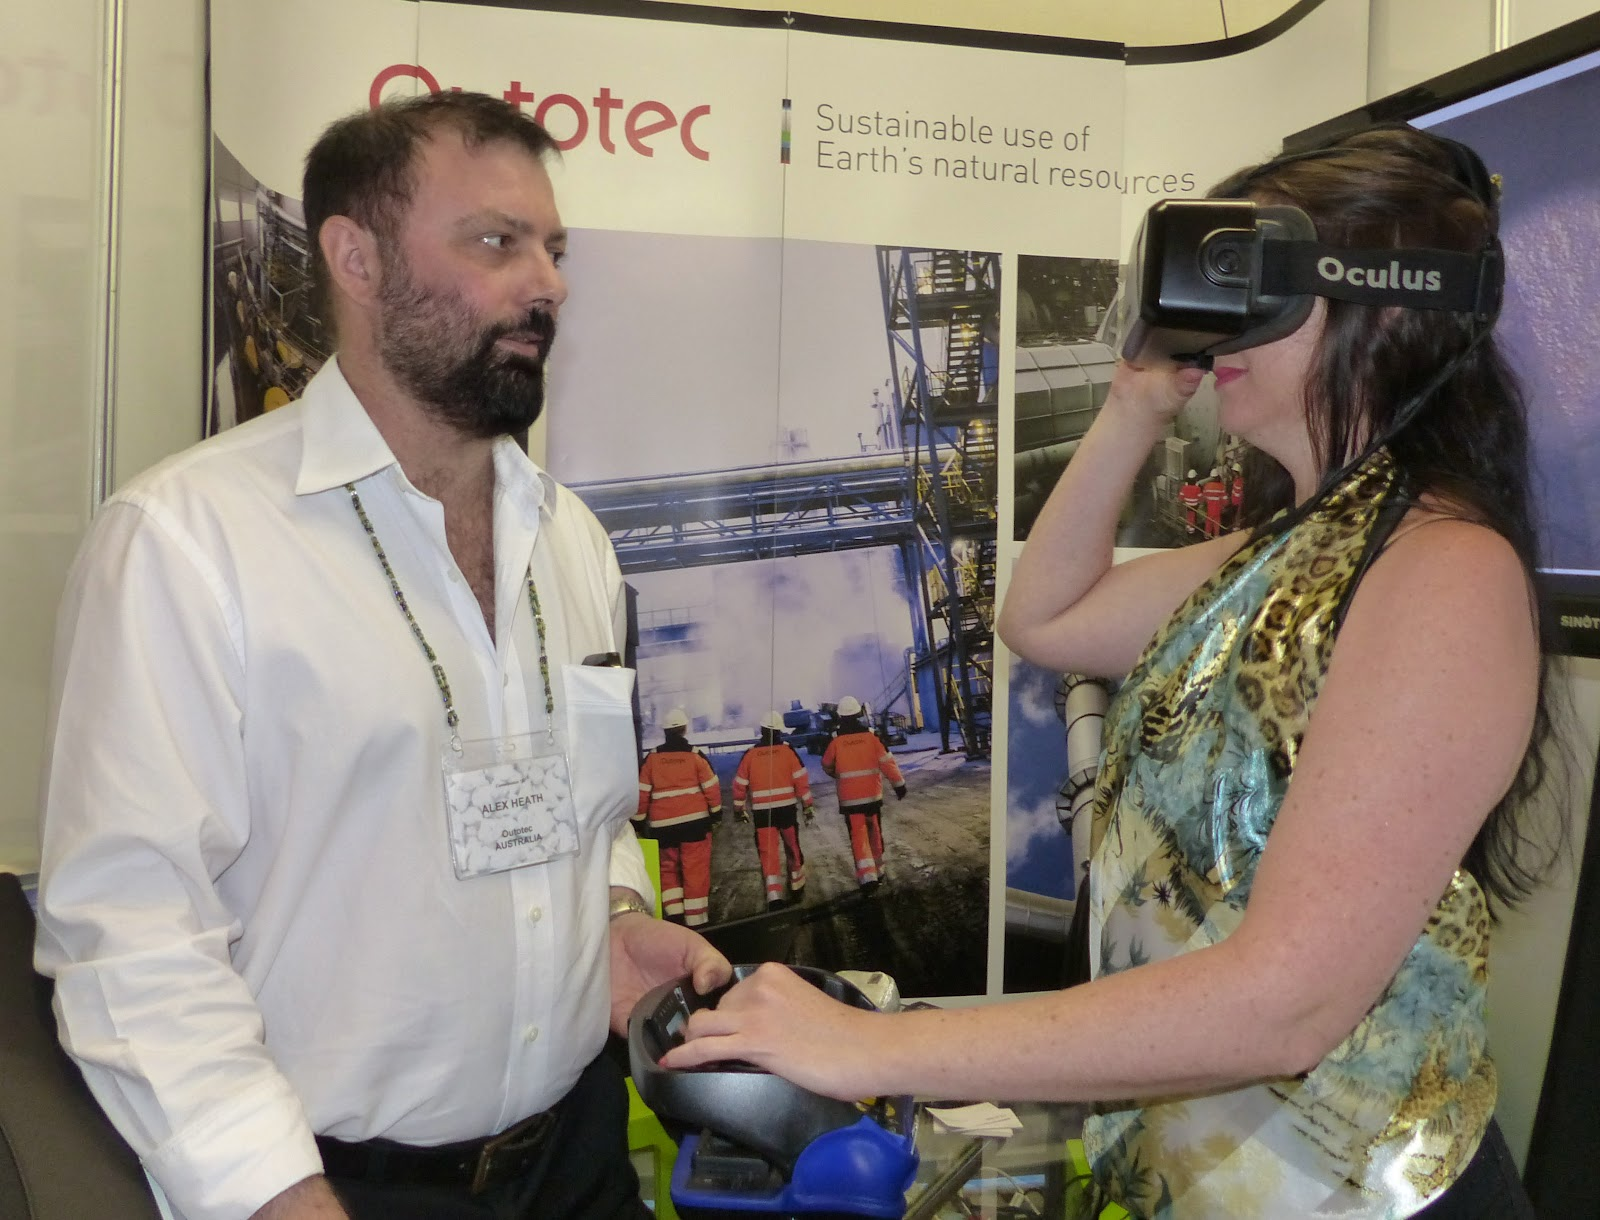 Mei Blog Comminution 16 Conference Diary Digital Control Lab Ag Sag Ball Mill Optimization And Process Alex Heath Angie Voges Of Outotec Demonstrating The Virtual Reality System For Training Operators In Relining